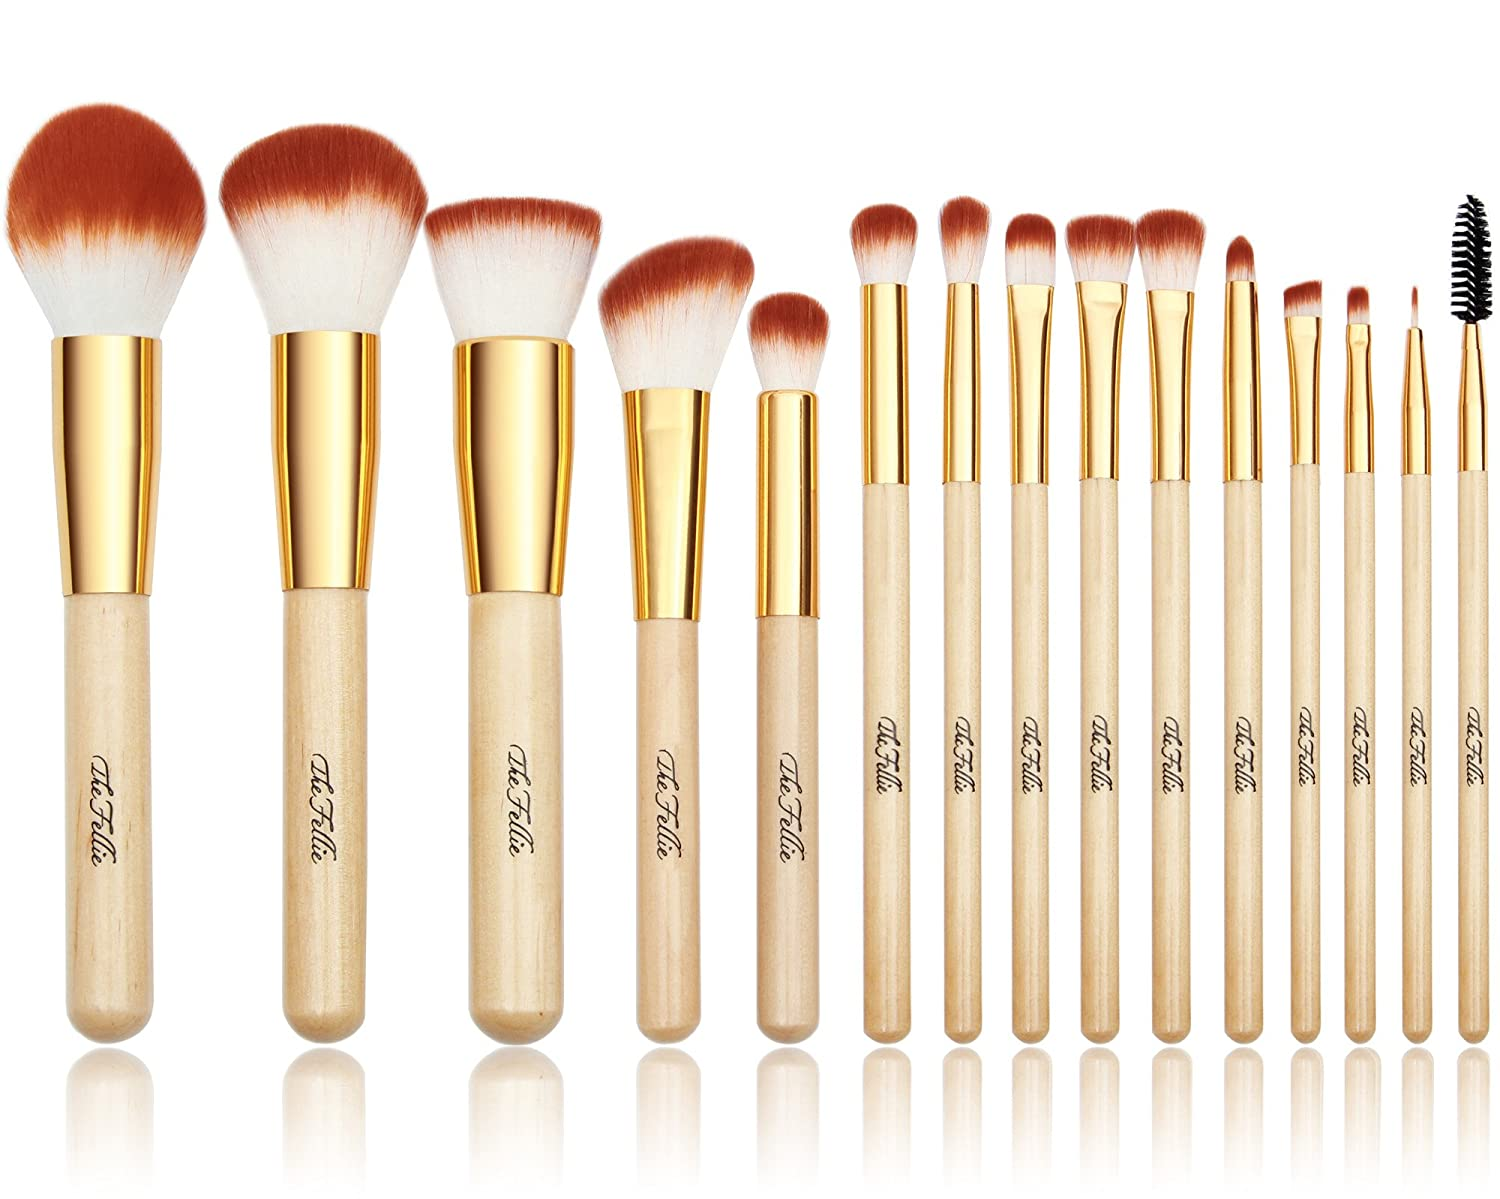 The Fellie Makeup Brushes, Professional Makeup Brush Set For Powder Foundation Blush Eyebrow Concealer Eyeshadow Cosmetics - 15 PCS